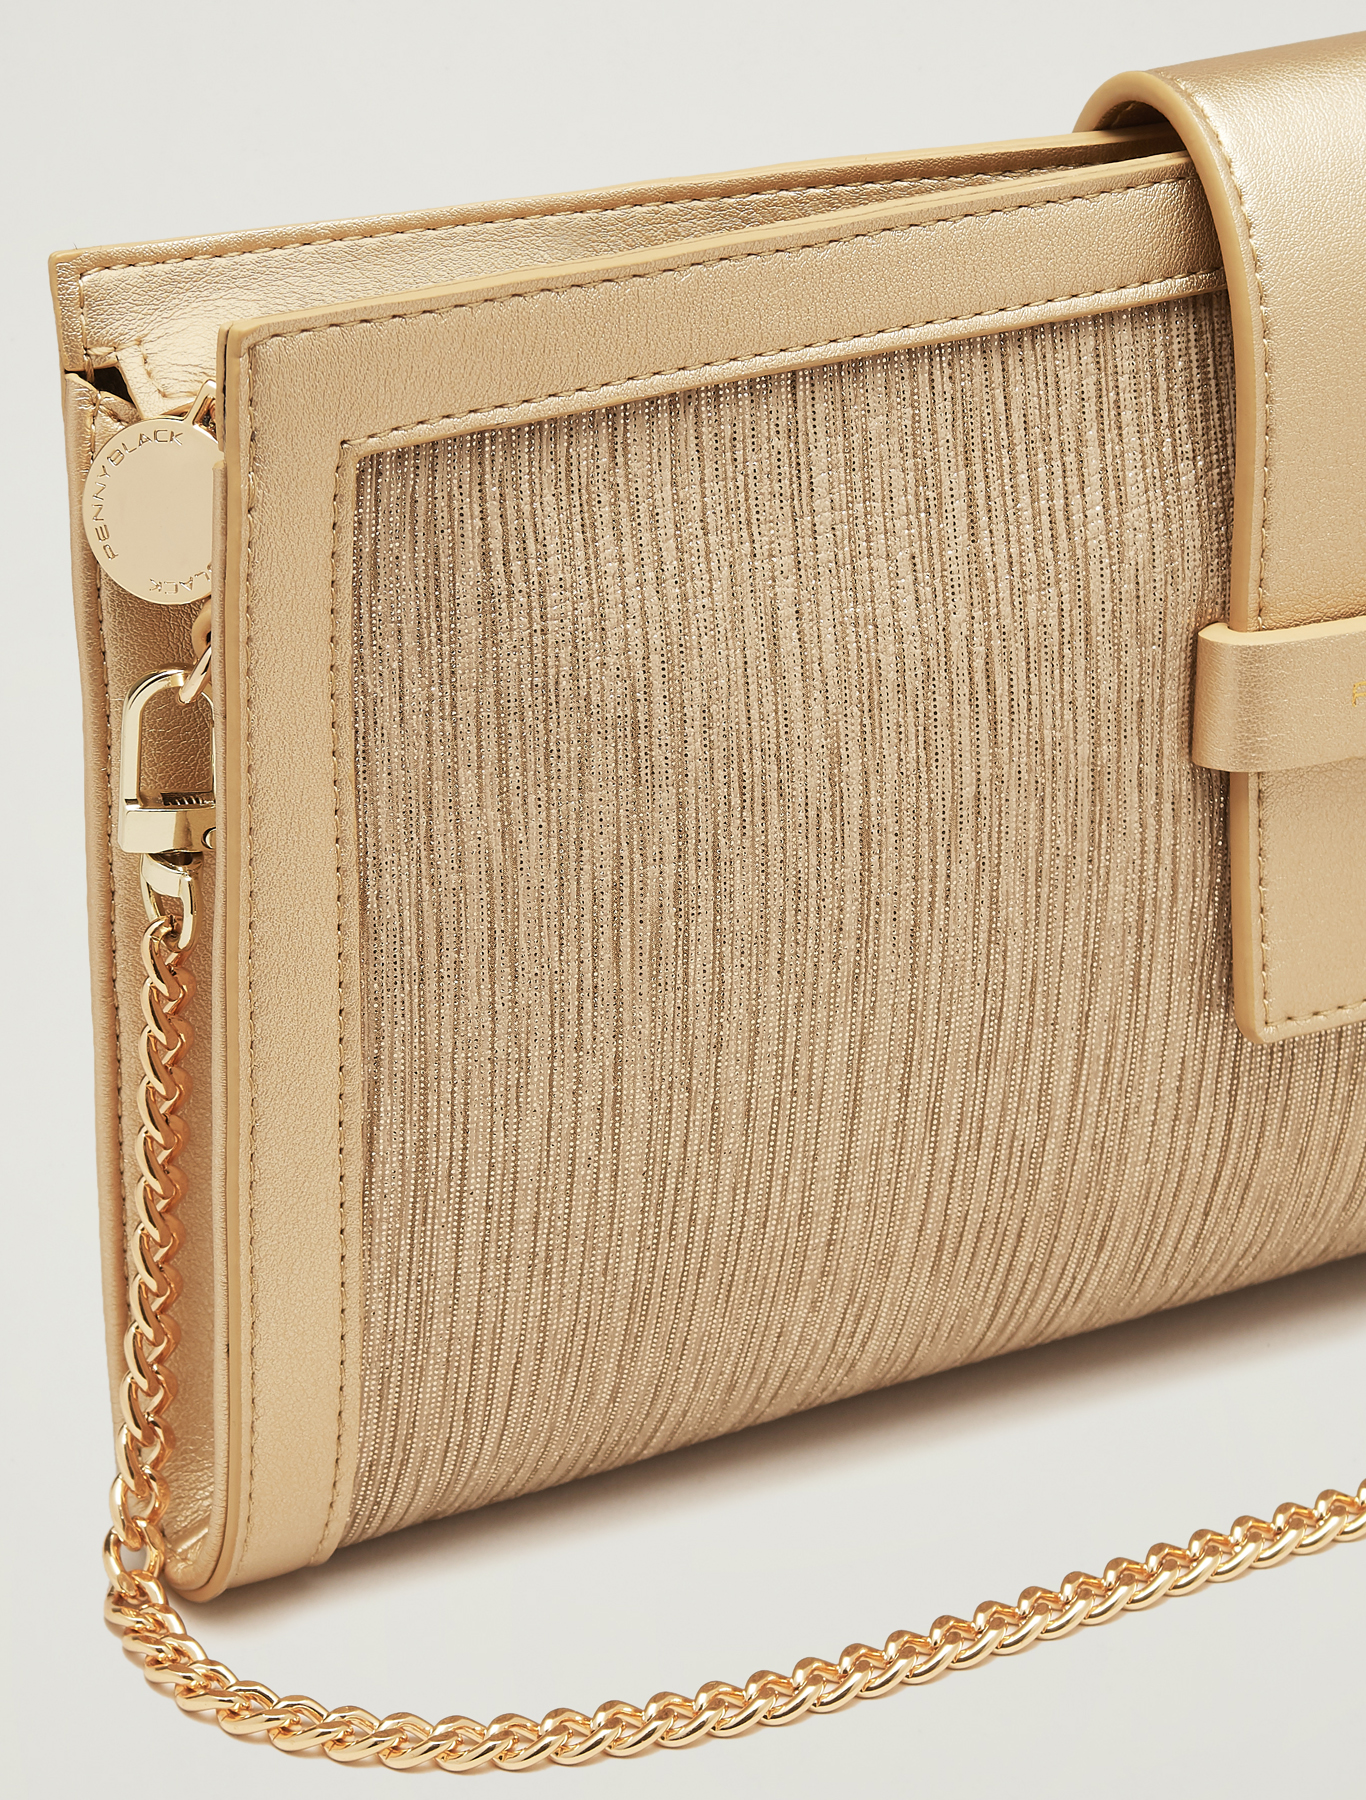 Lamé fabric clutch - gold - pennyblack